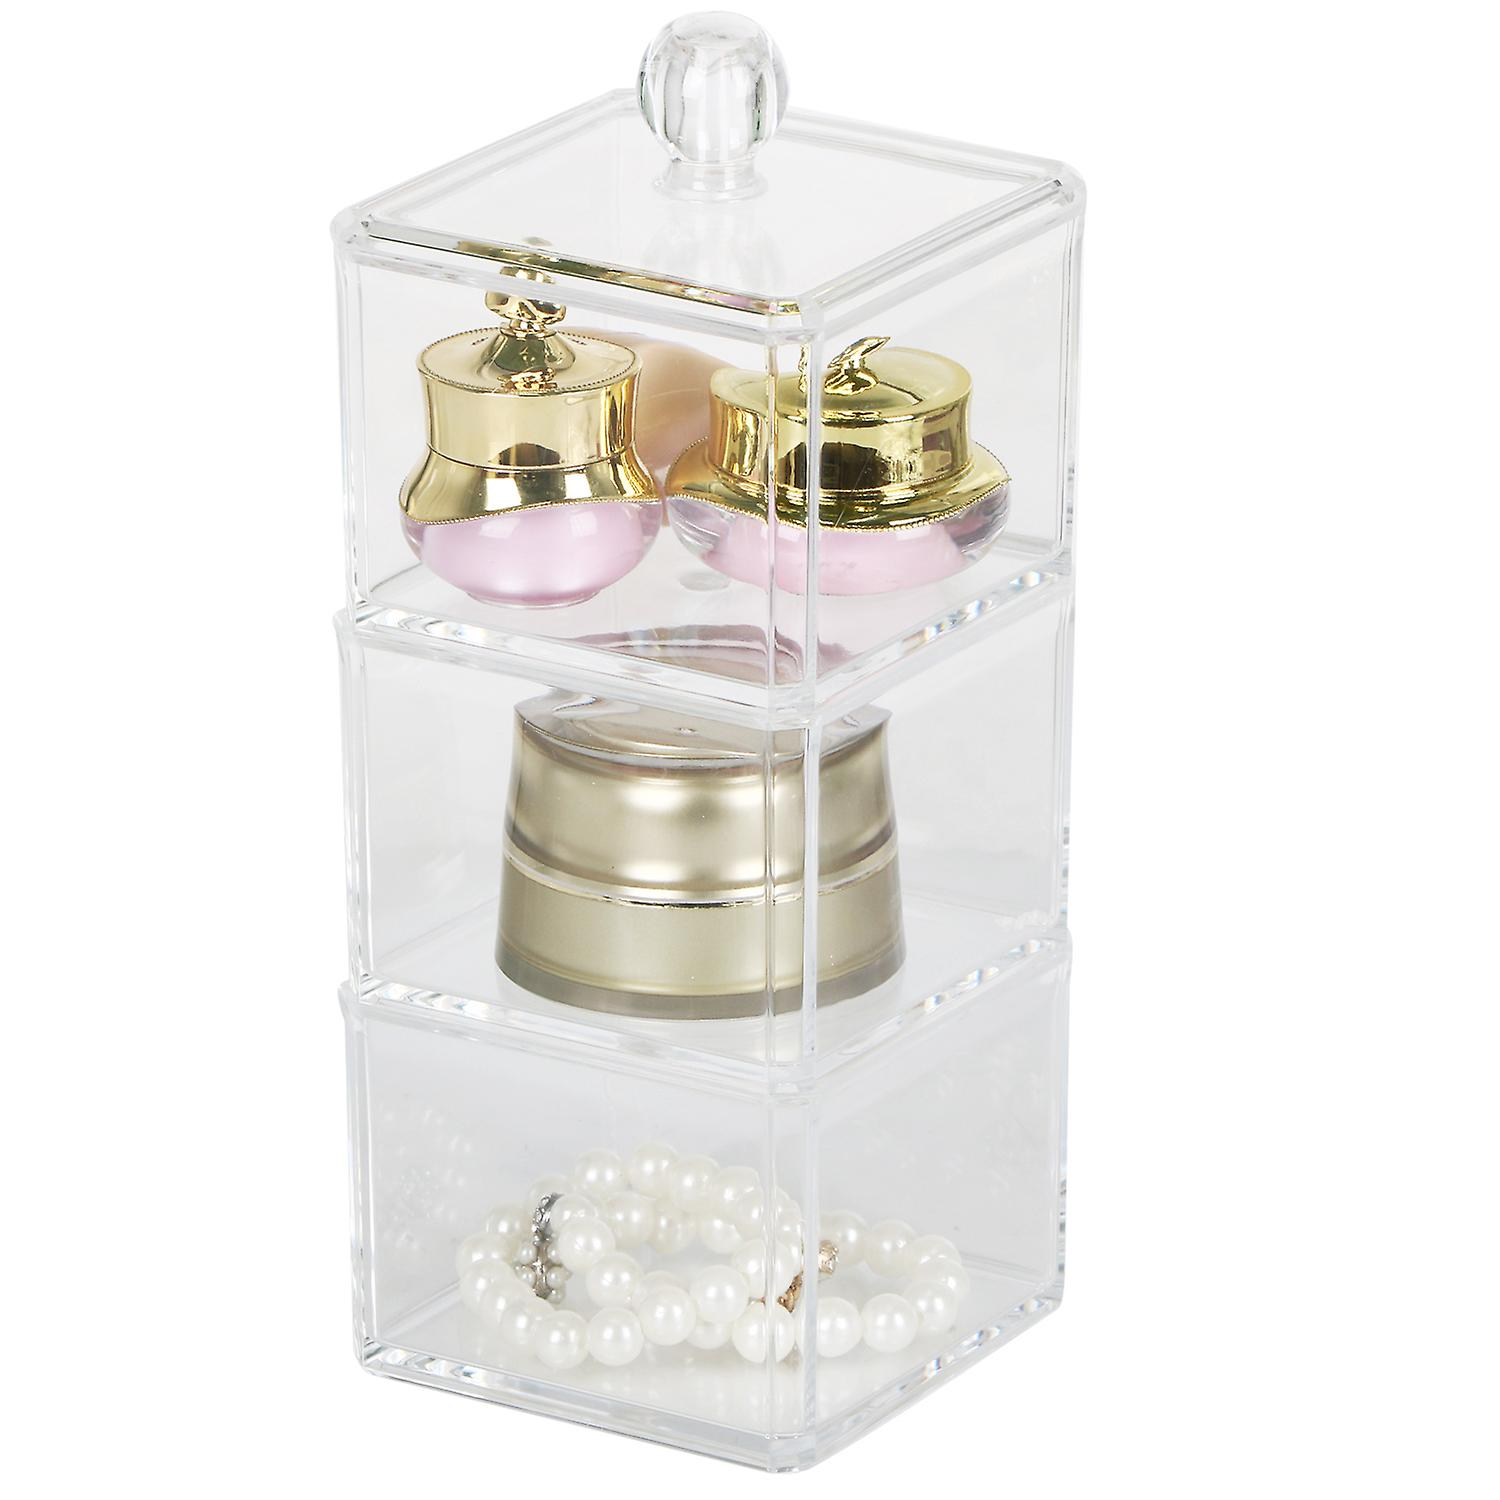 Transparent 3 Tier Stackable Cosmetic Organiser Storage Trinket Box - By TRIXES